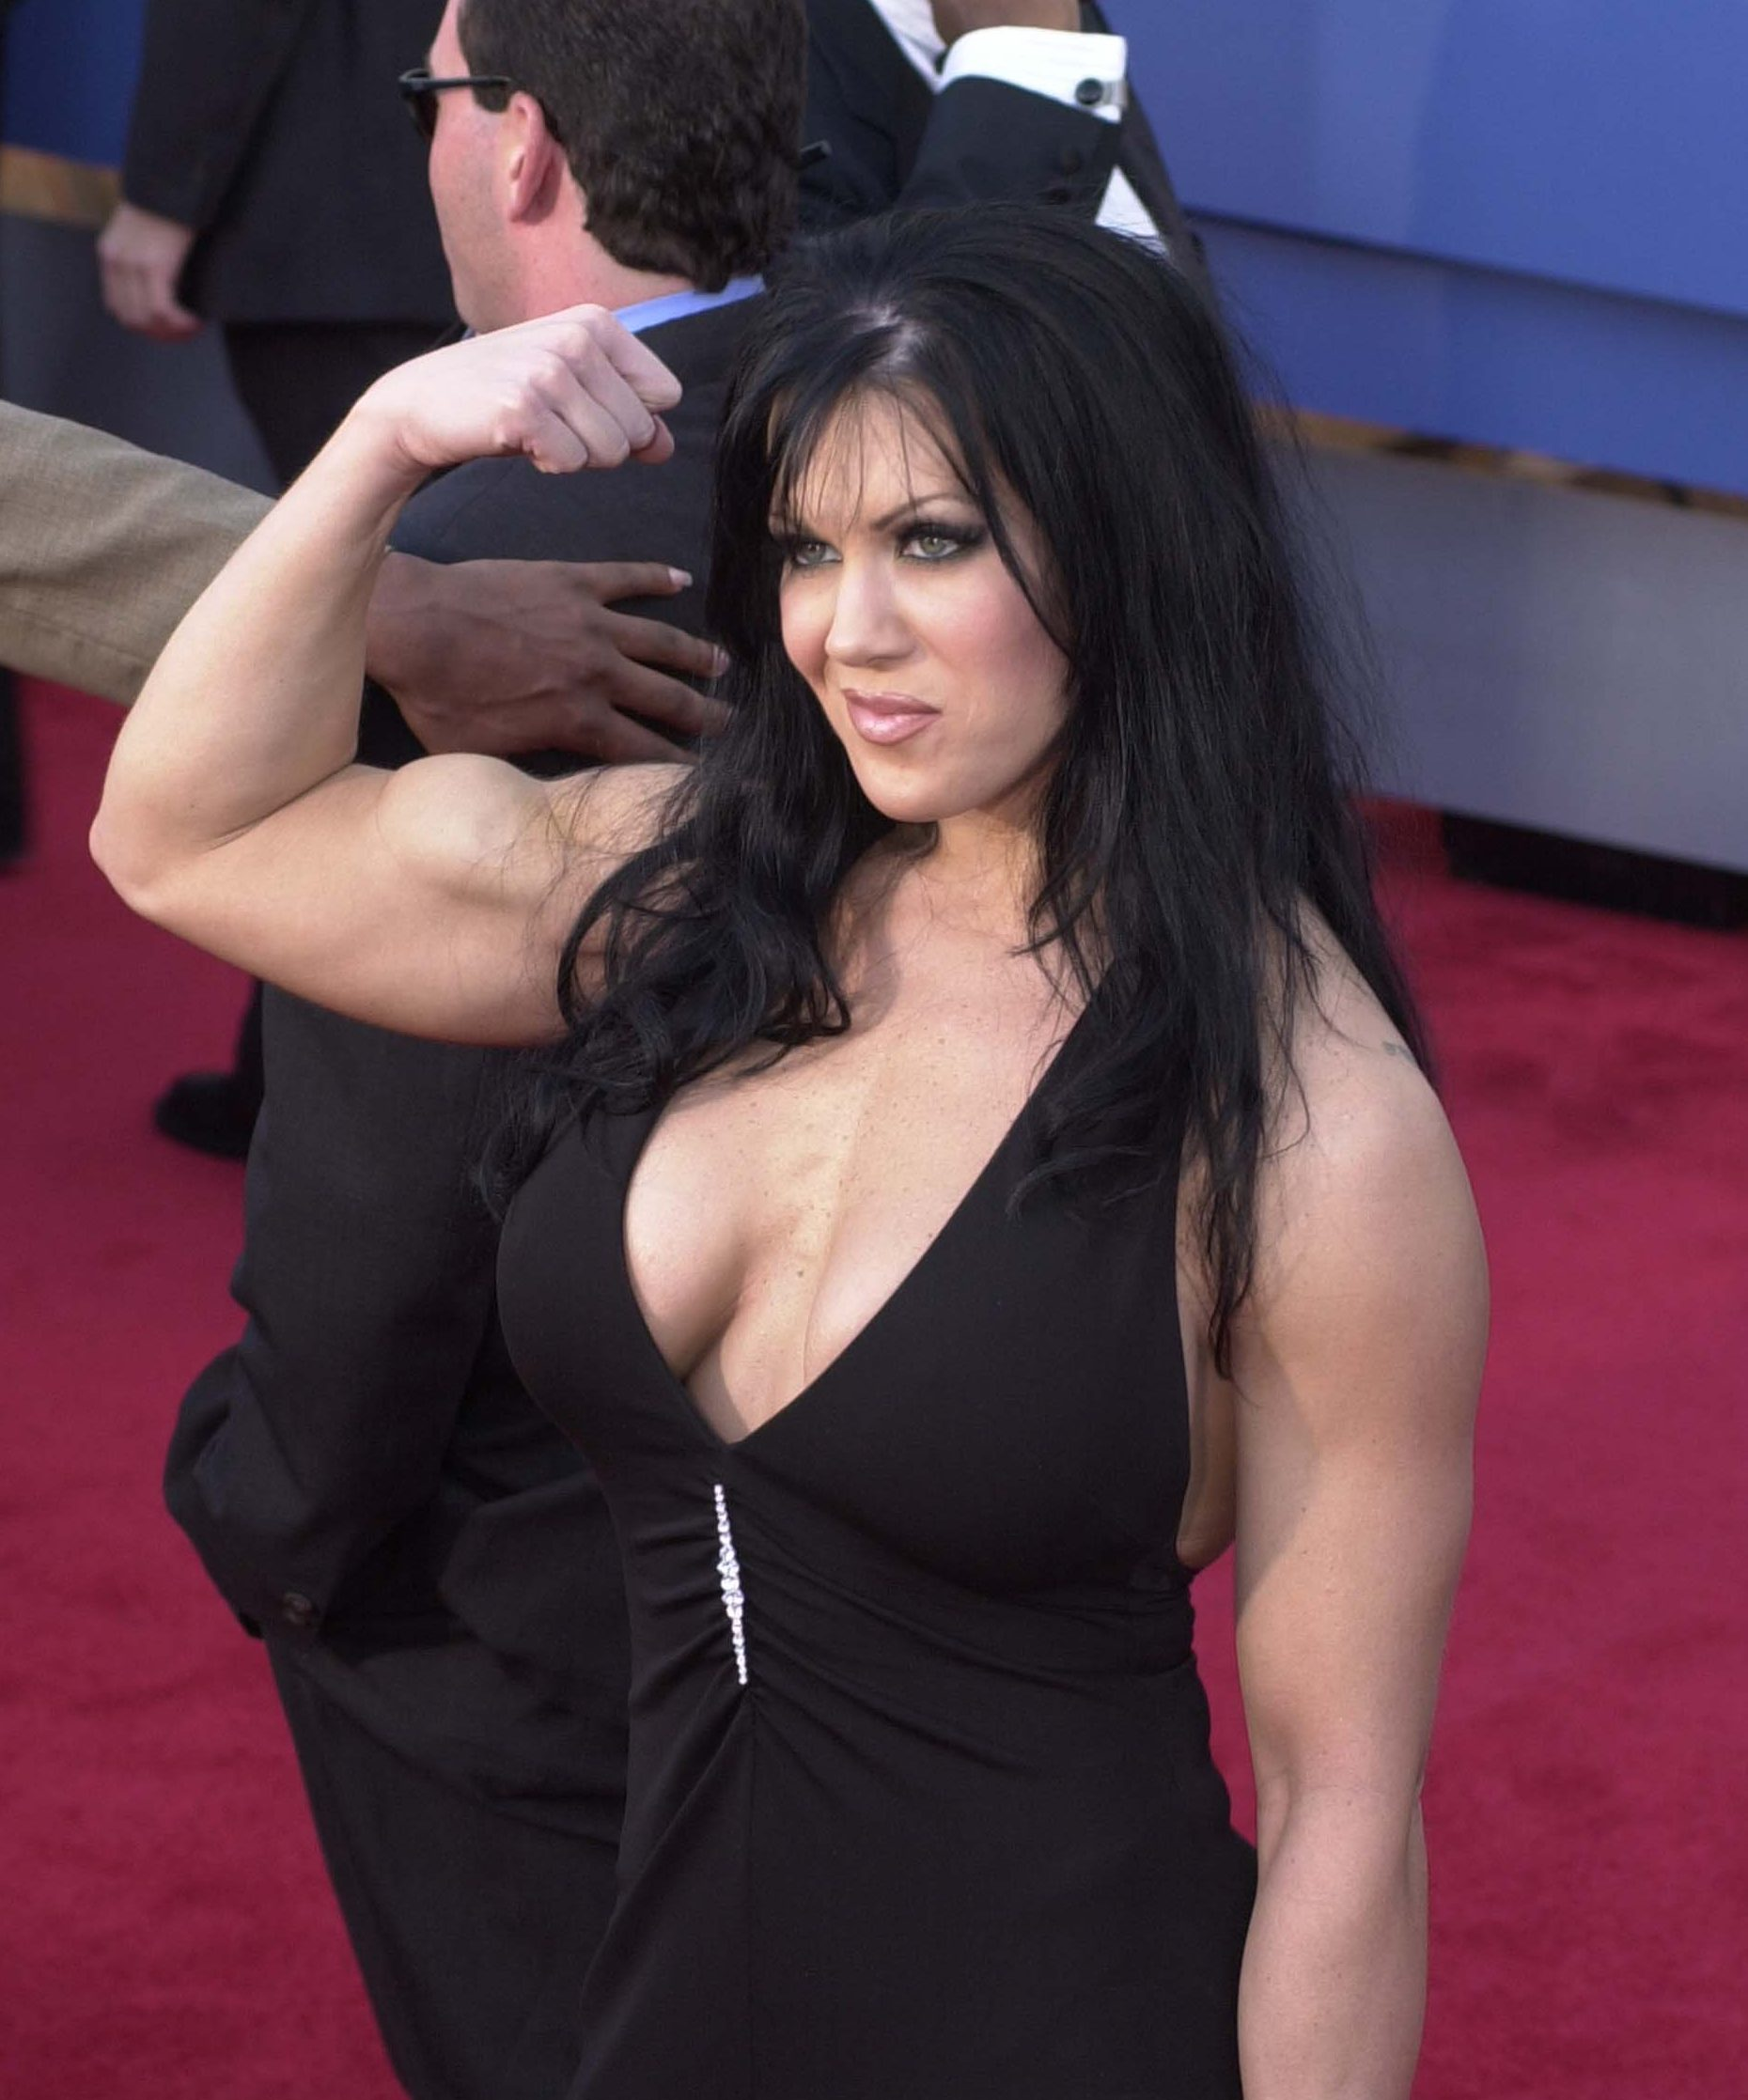 Joanie Laurer Aka Chyna To Finally Be Inducted Into Wwe Hall Of Fame In 2019, But -1945